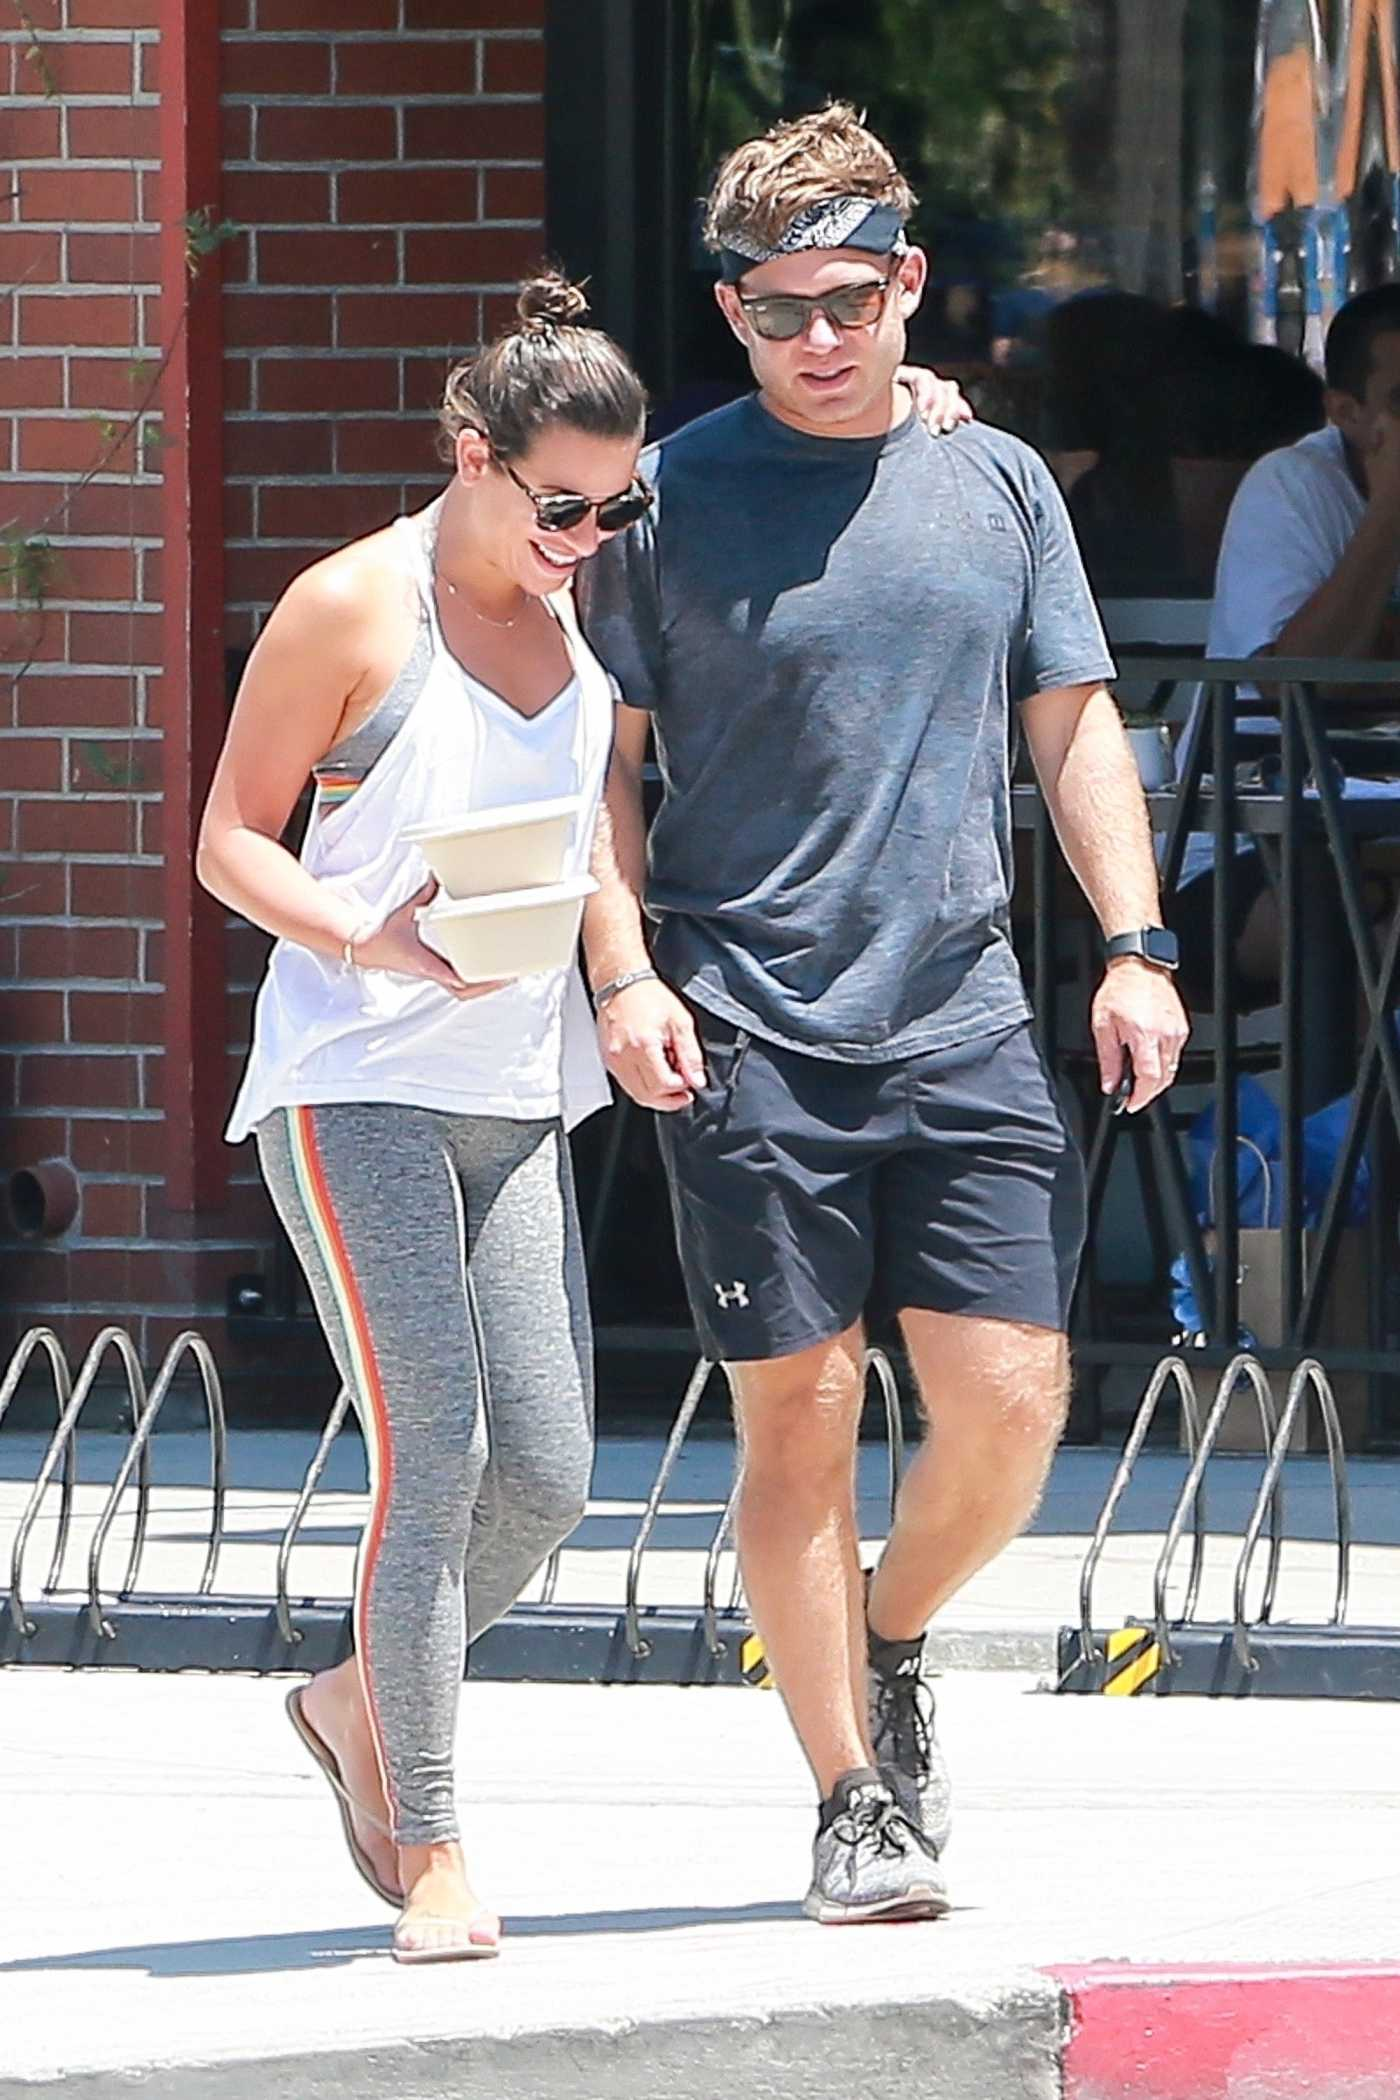 Lea Michele in a White Tank Top Grabs Lunch at Cafe Gratitude Out with her husband in Venice Beach 07/20/2019